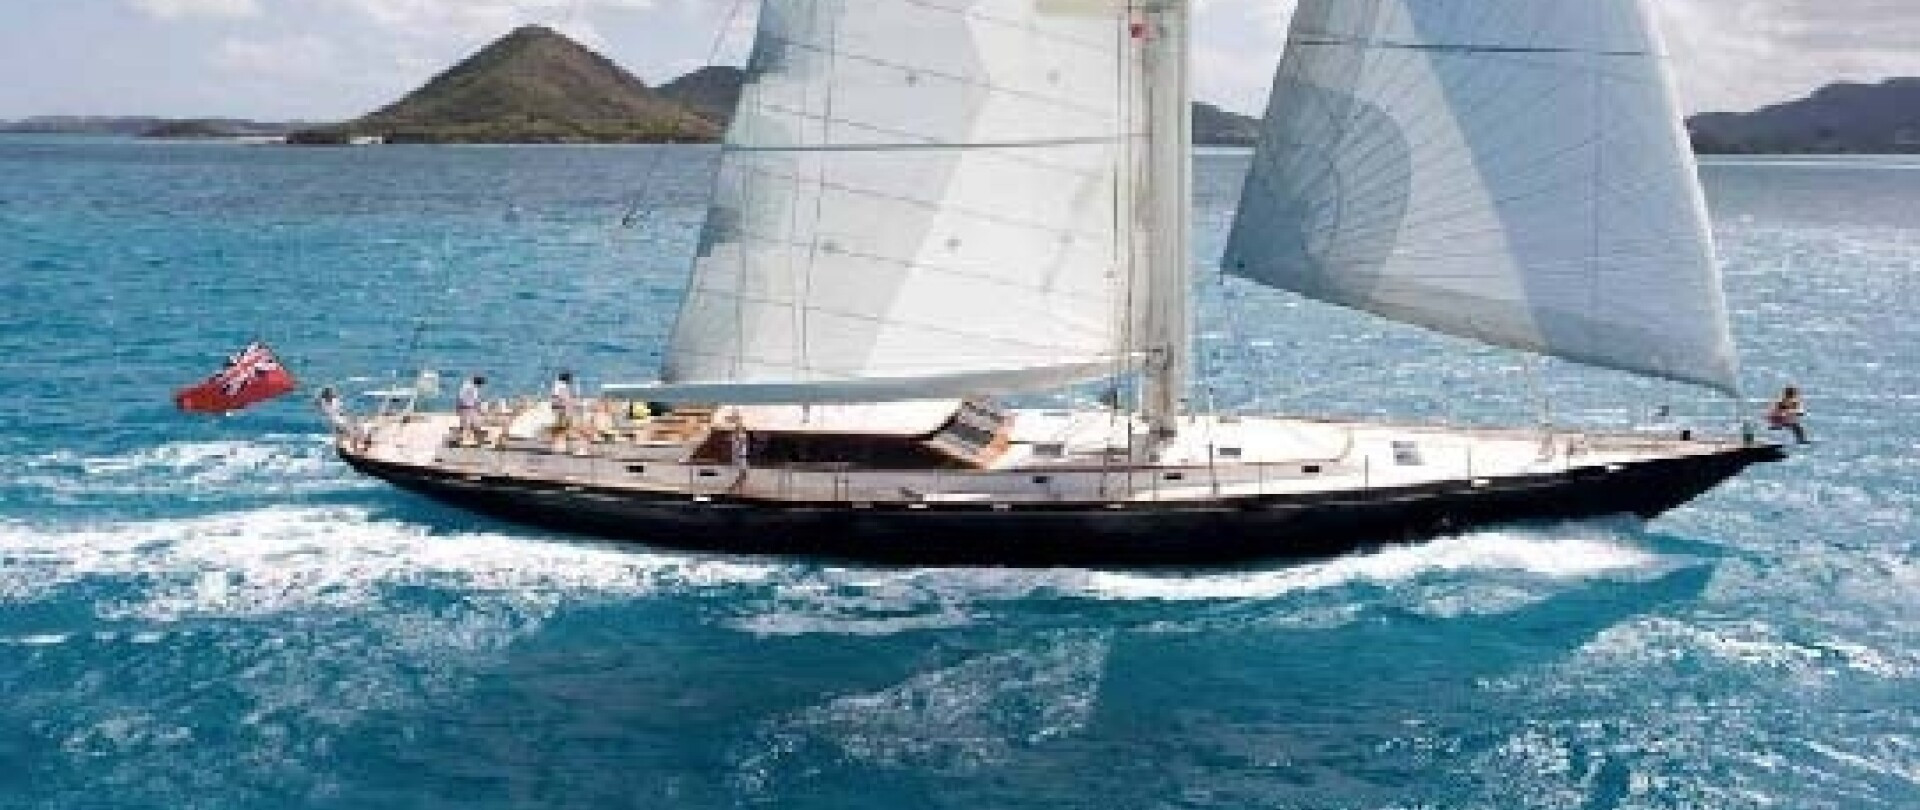 WHIRLWIND Available to Charter in the West Med photo 1